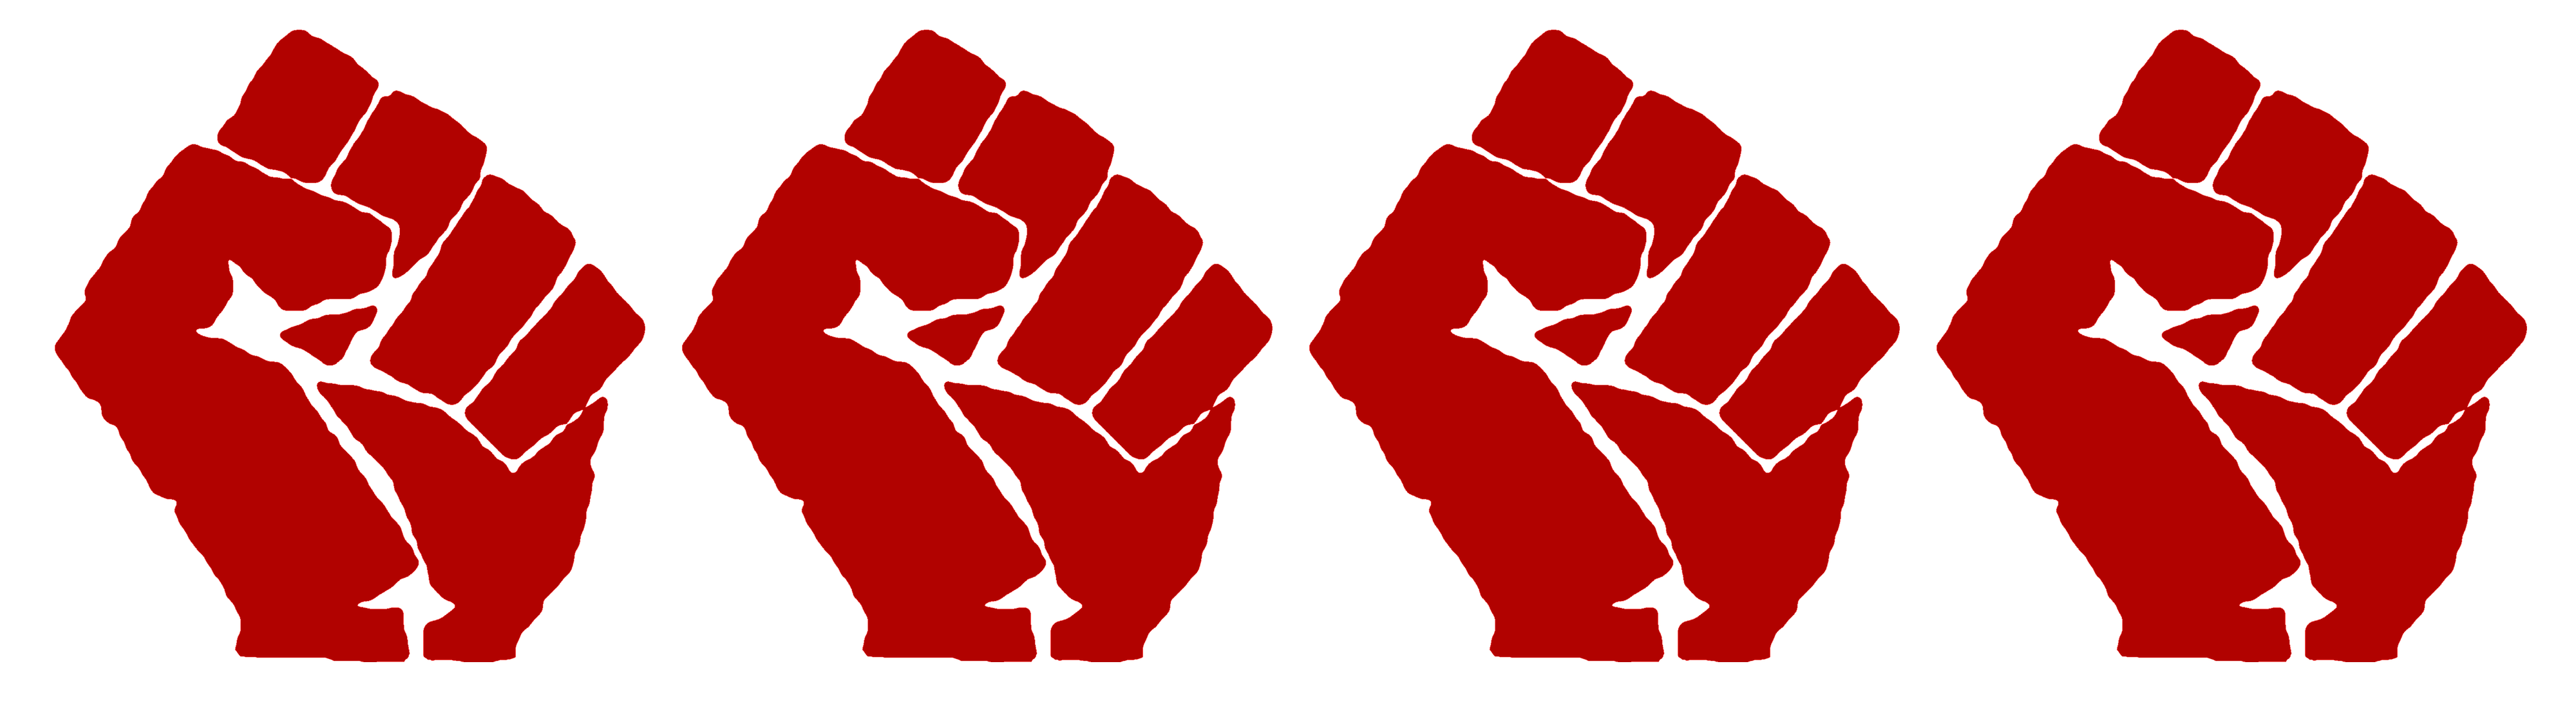 Fist clipart rebellion. Earring silver social justice